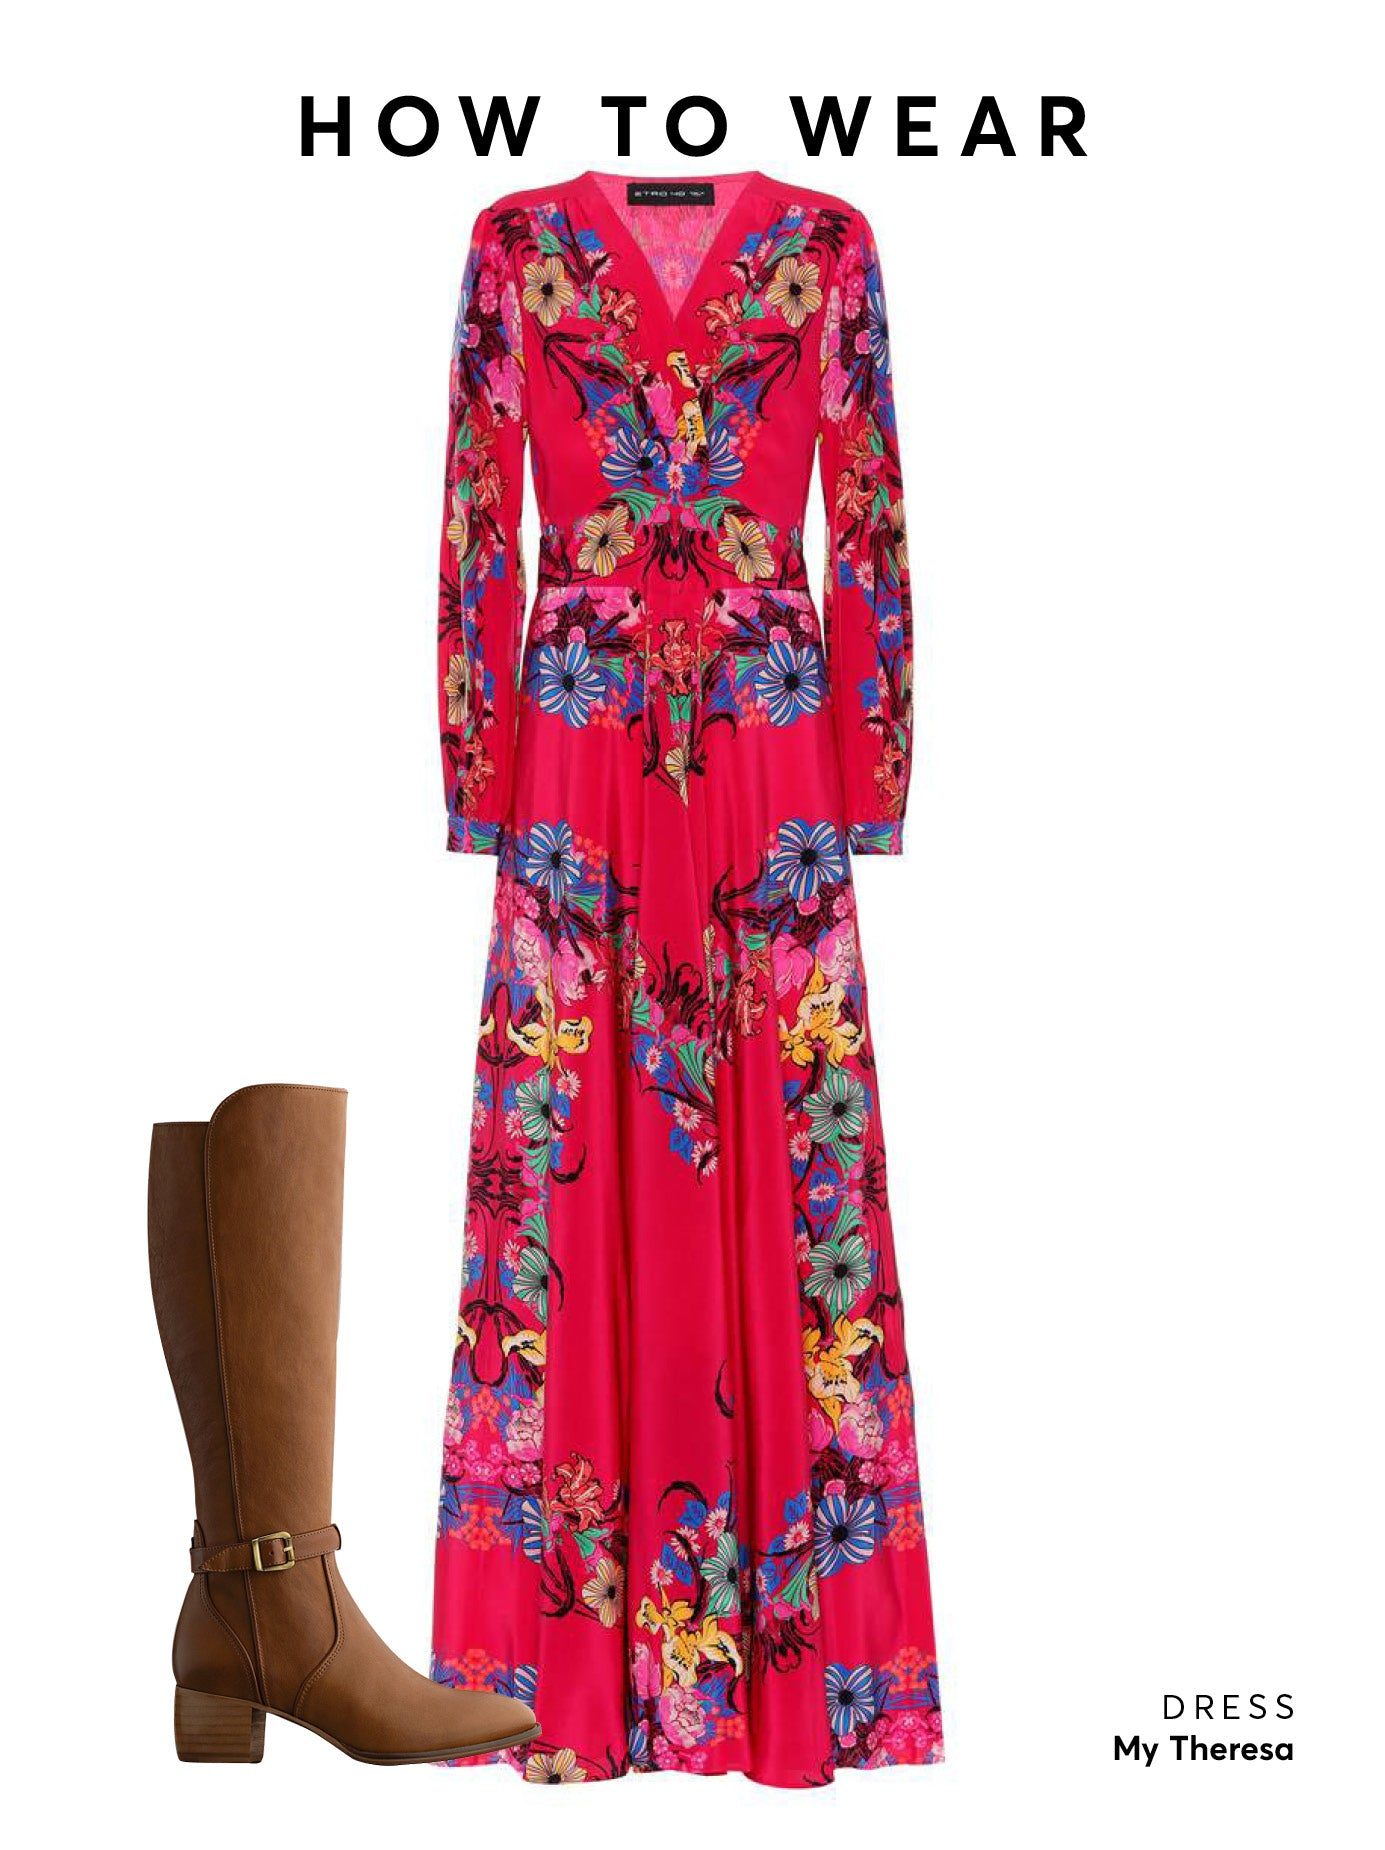 Wear this brown boot with a floral midi or maxi dress to get this look.